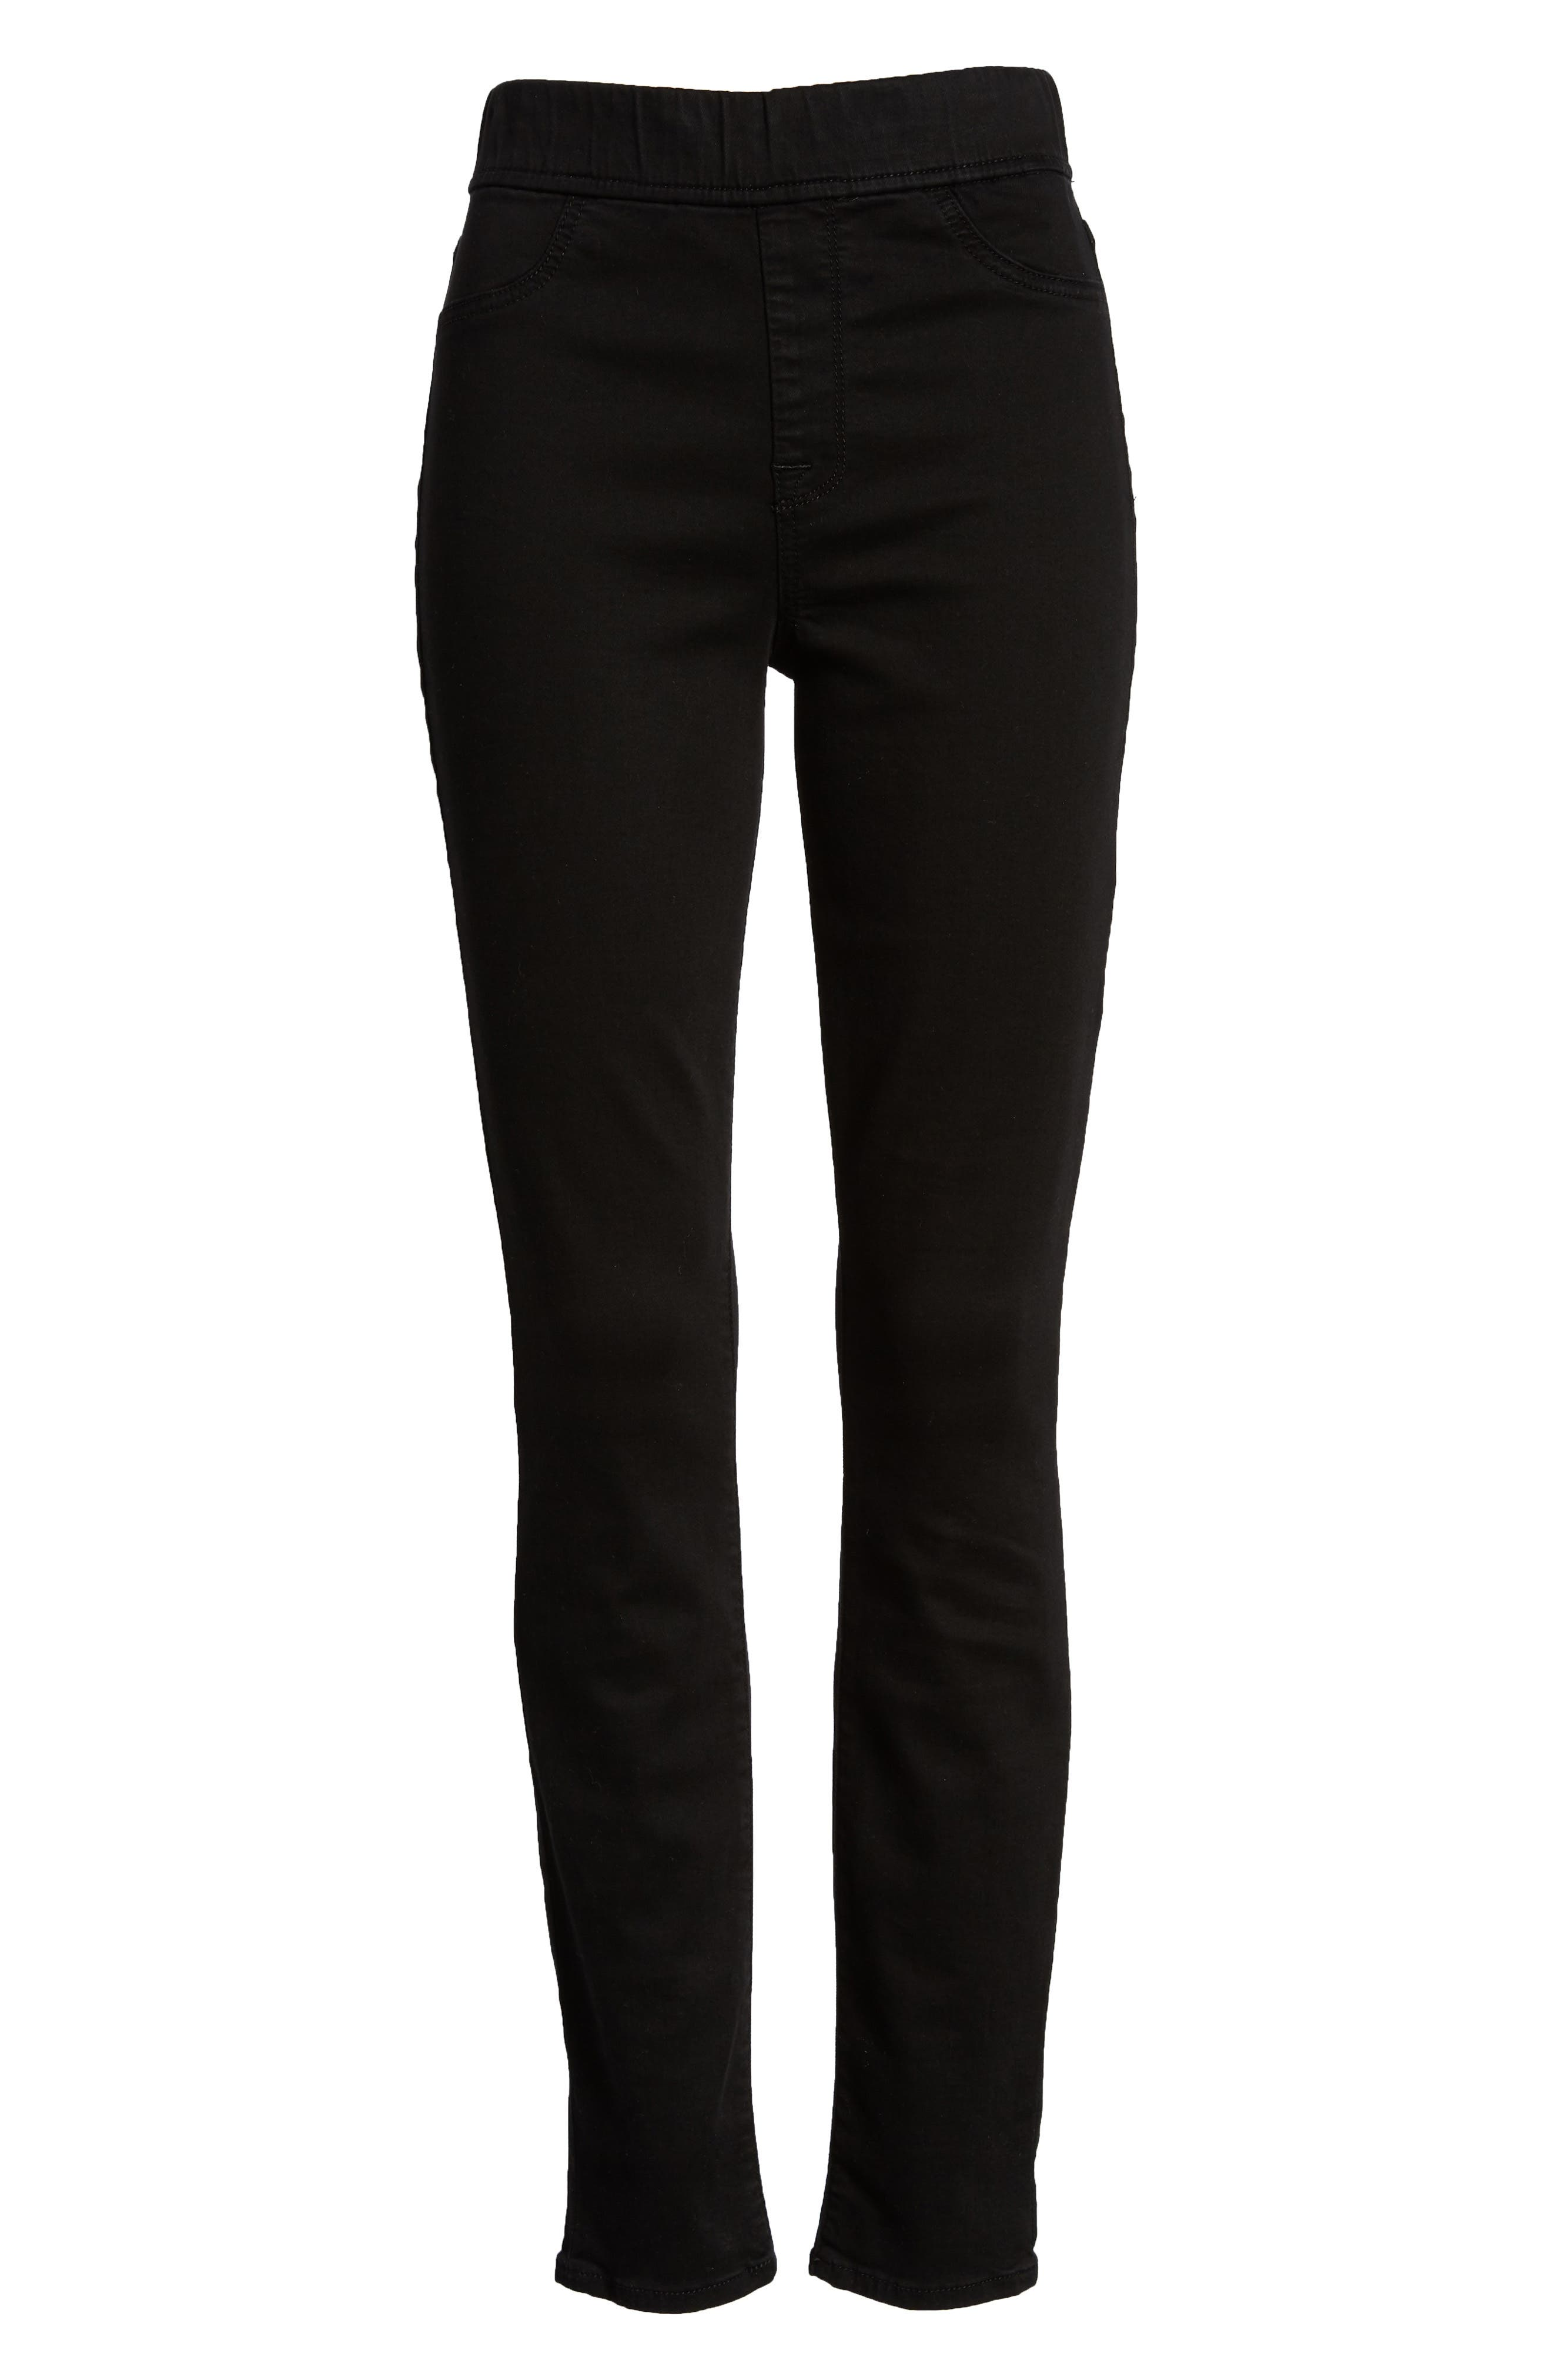 Comfort Skinny Denim Leggings,                             Alternate thumbnail 7, color,                             RICHE TOUCH BLACK NOIR